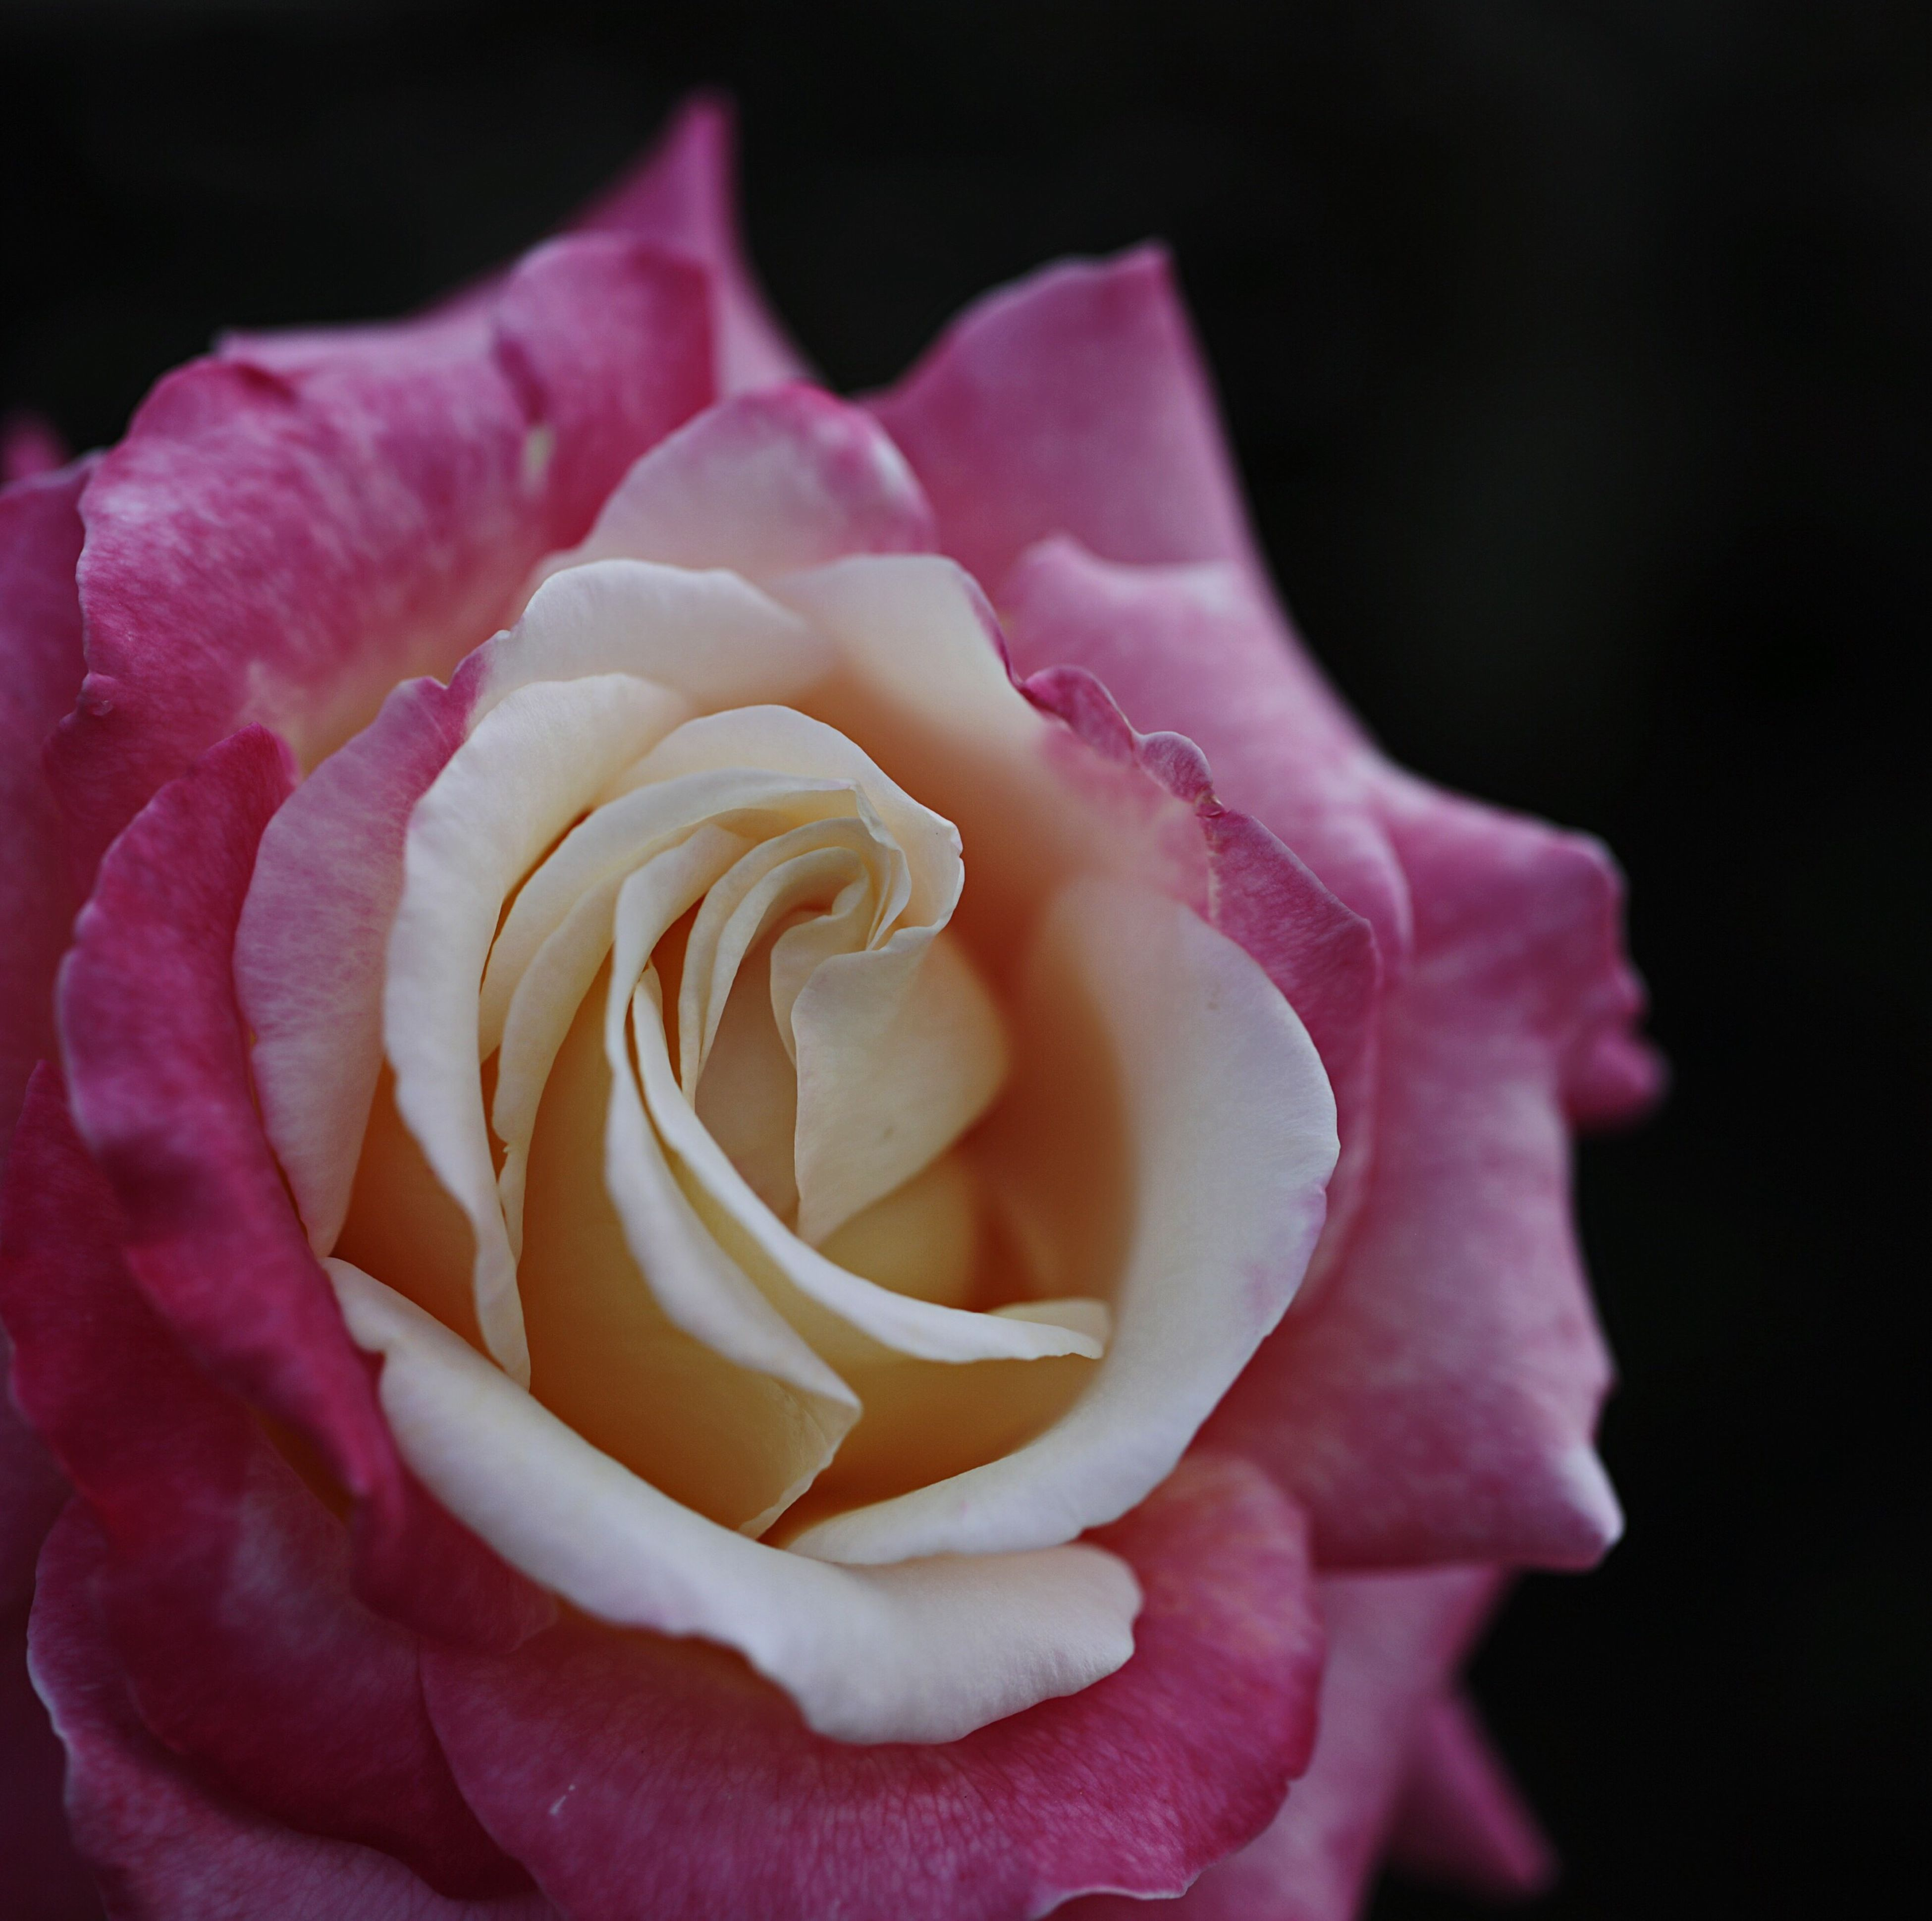 flower, petal, nature, beauty in nature, flower head, rose - flower, growth, plant, love, beauty, blooming, softness, freshness, fragility, individuality, blossom, no people, outdoors, close-up